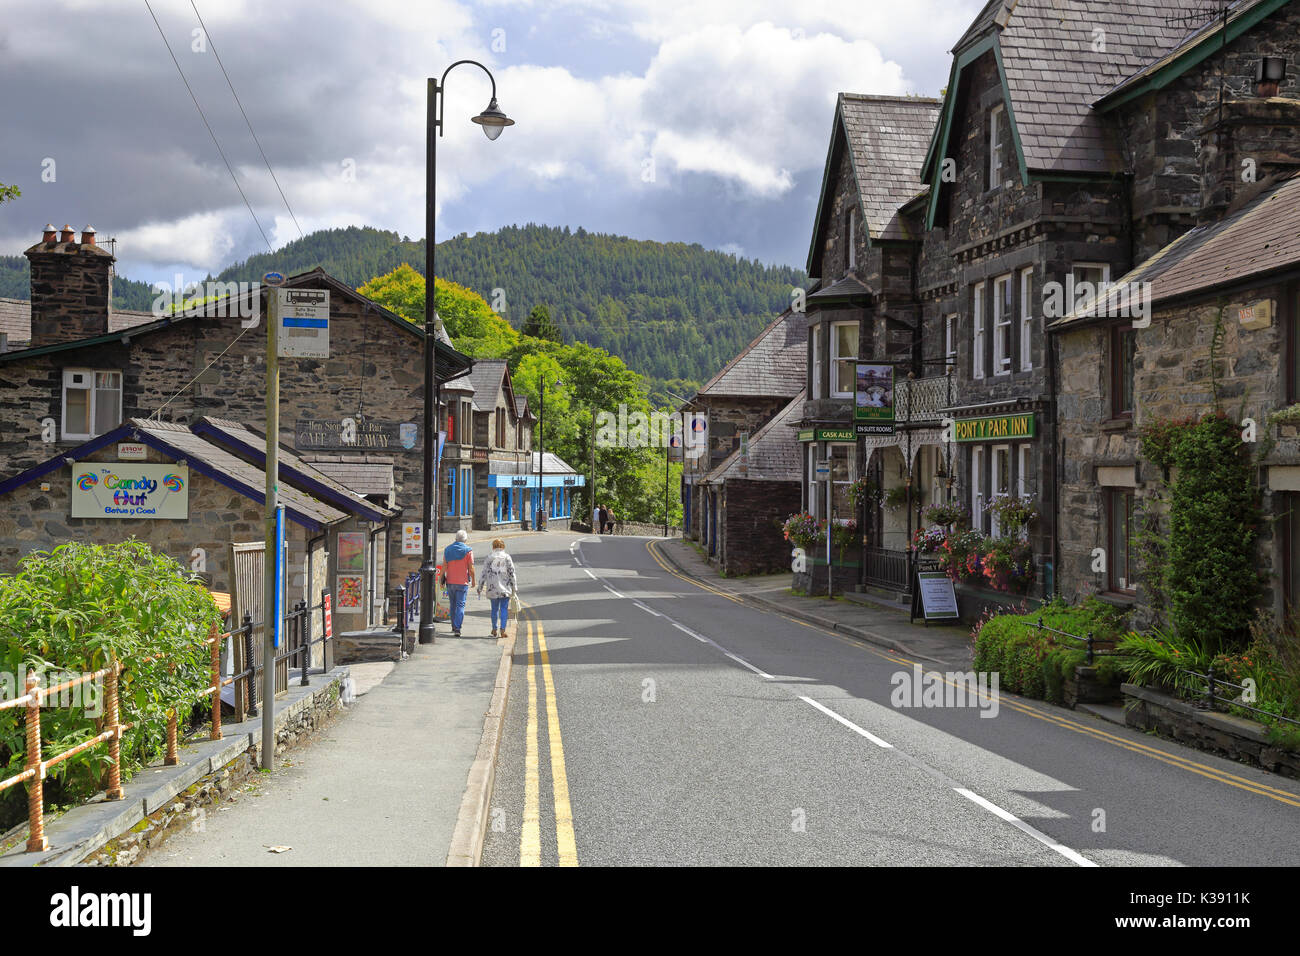 The A5 Holyhead Road through Betws-y-Coed by the Pont-y-Pair Inn, Snowdonia National Park, Conwy, North Wales, UK. - Stock Image